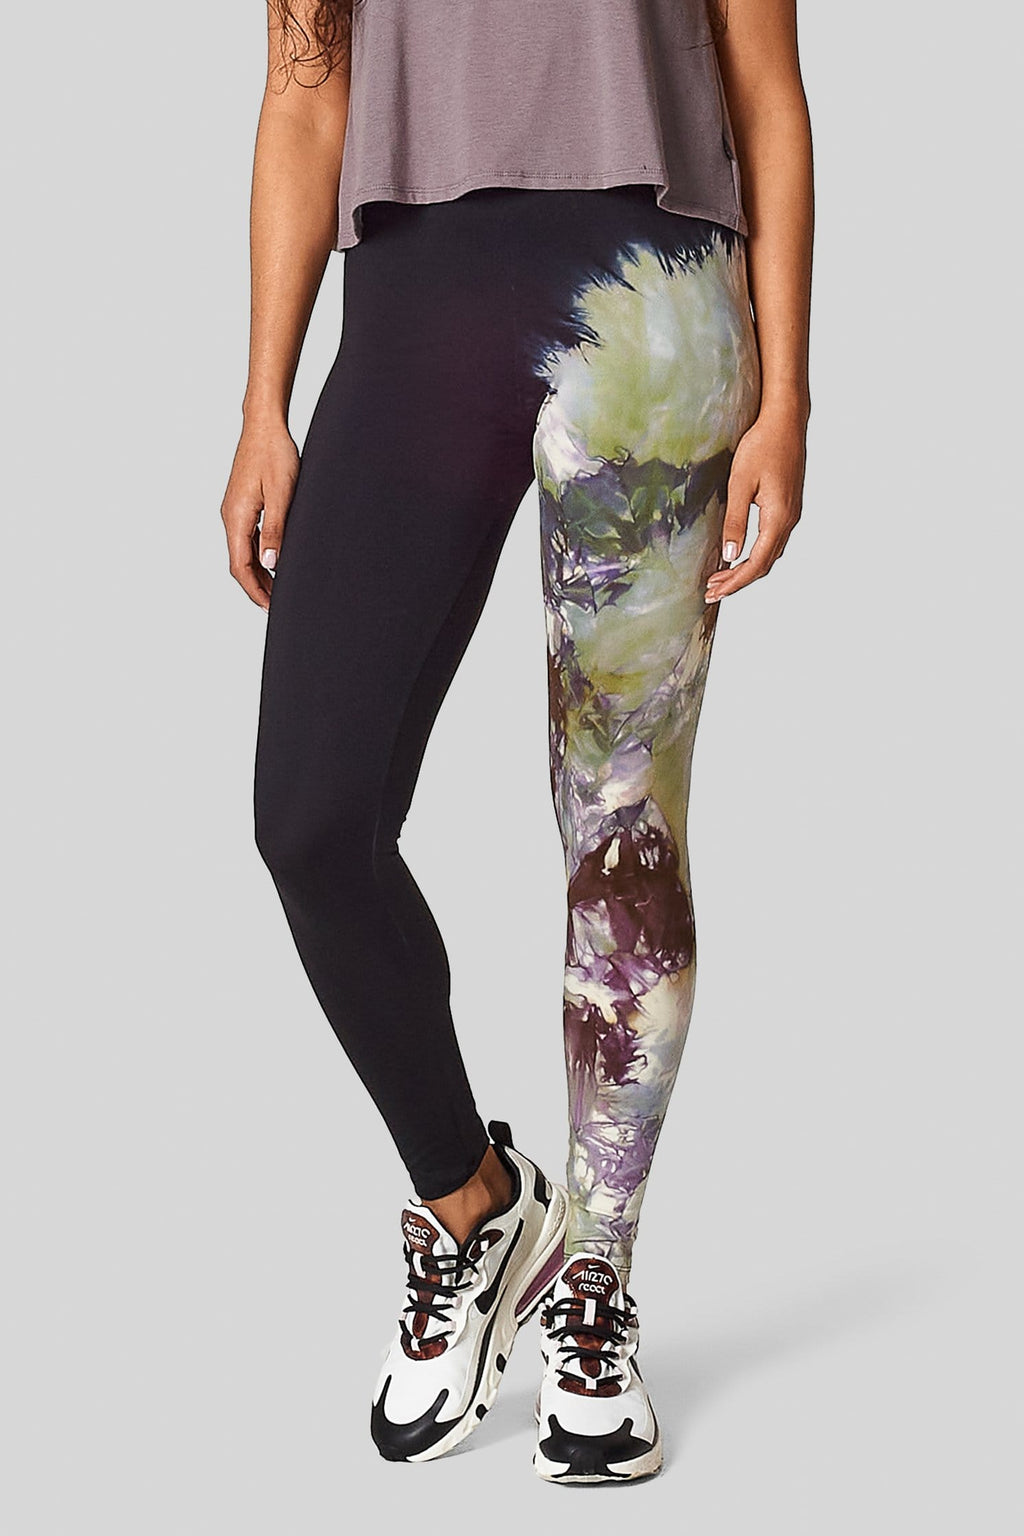 A woman wears a pair of leggings with one leg dyed black and one leg tie-dye